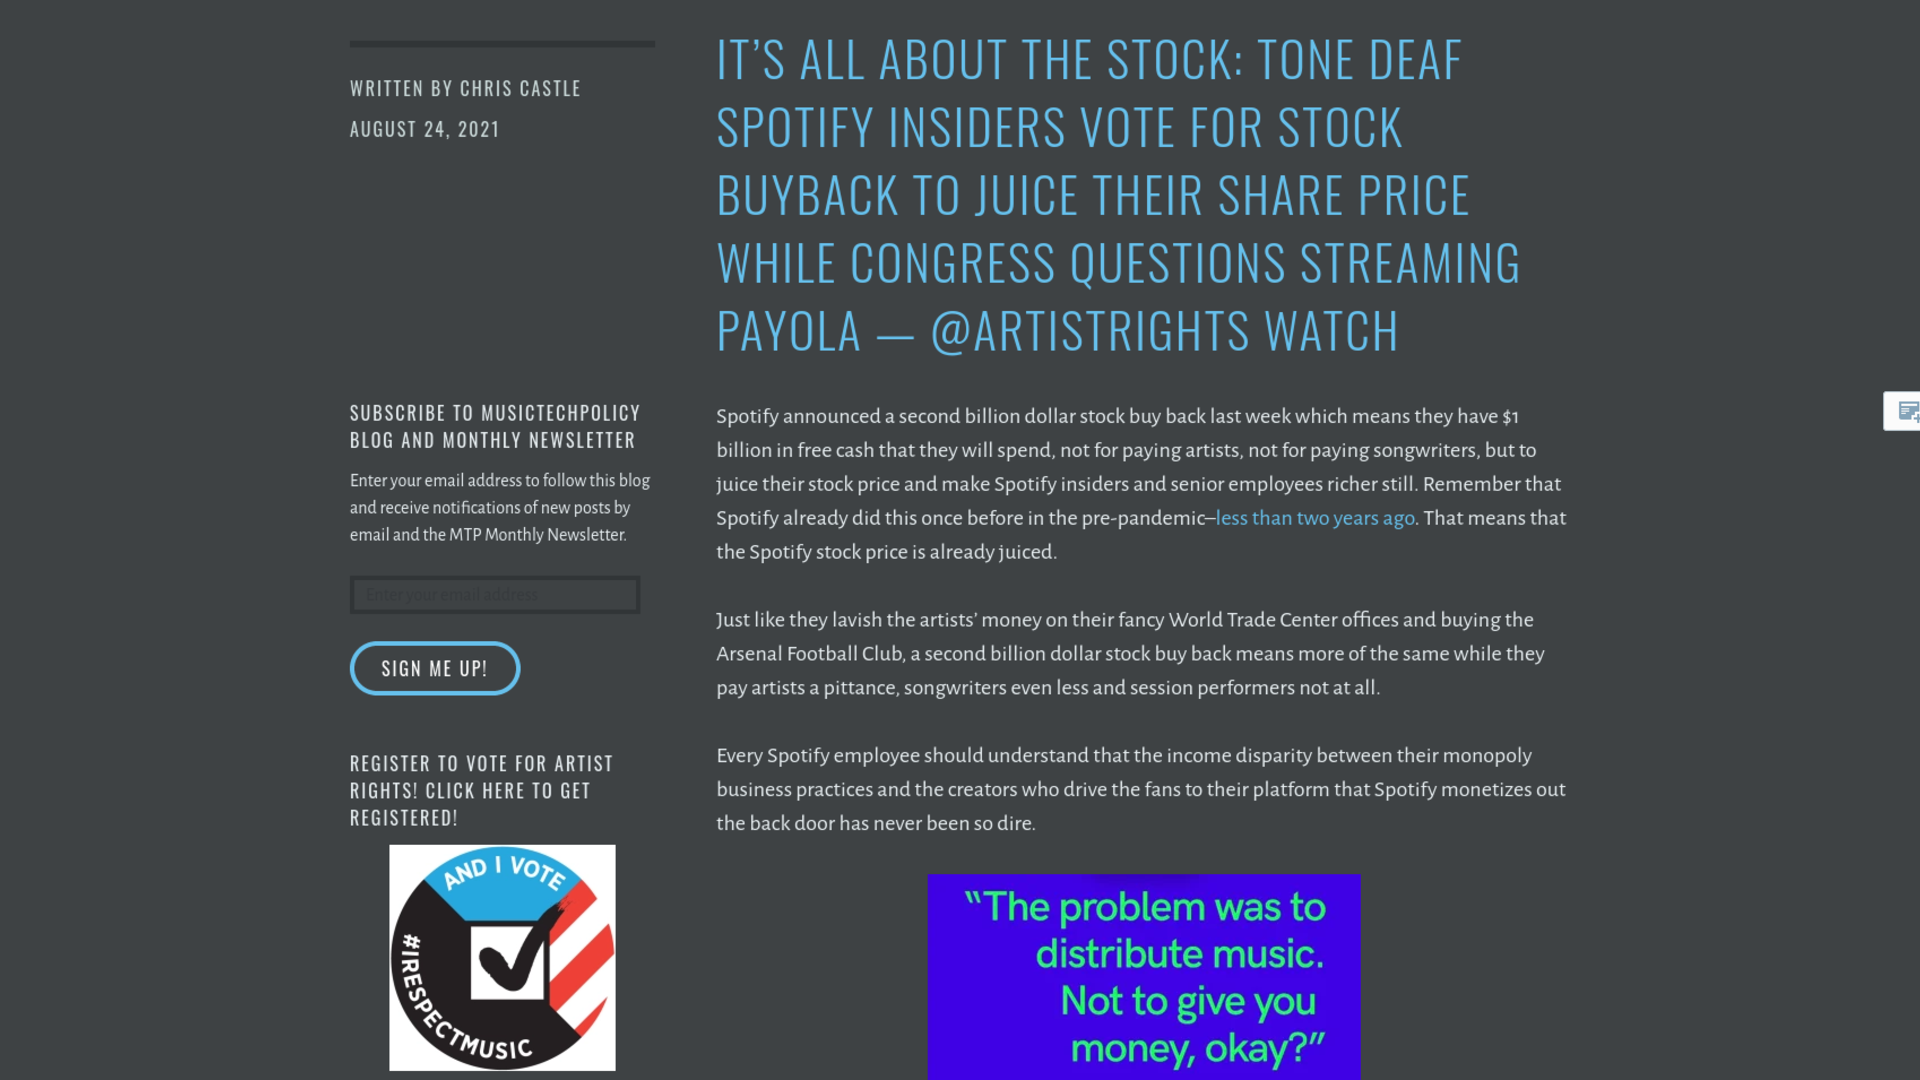 Fairness Rocks News It's All About the Stock: Tone deaf Spotify Insiders Vote for Stock Buyback to Juice Their Share Price While Congress Questions Streaming Payola — @ArtistRights Watch